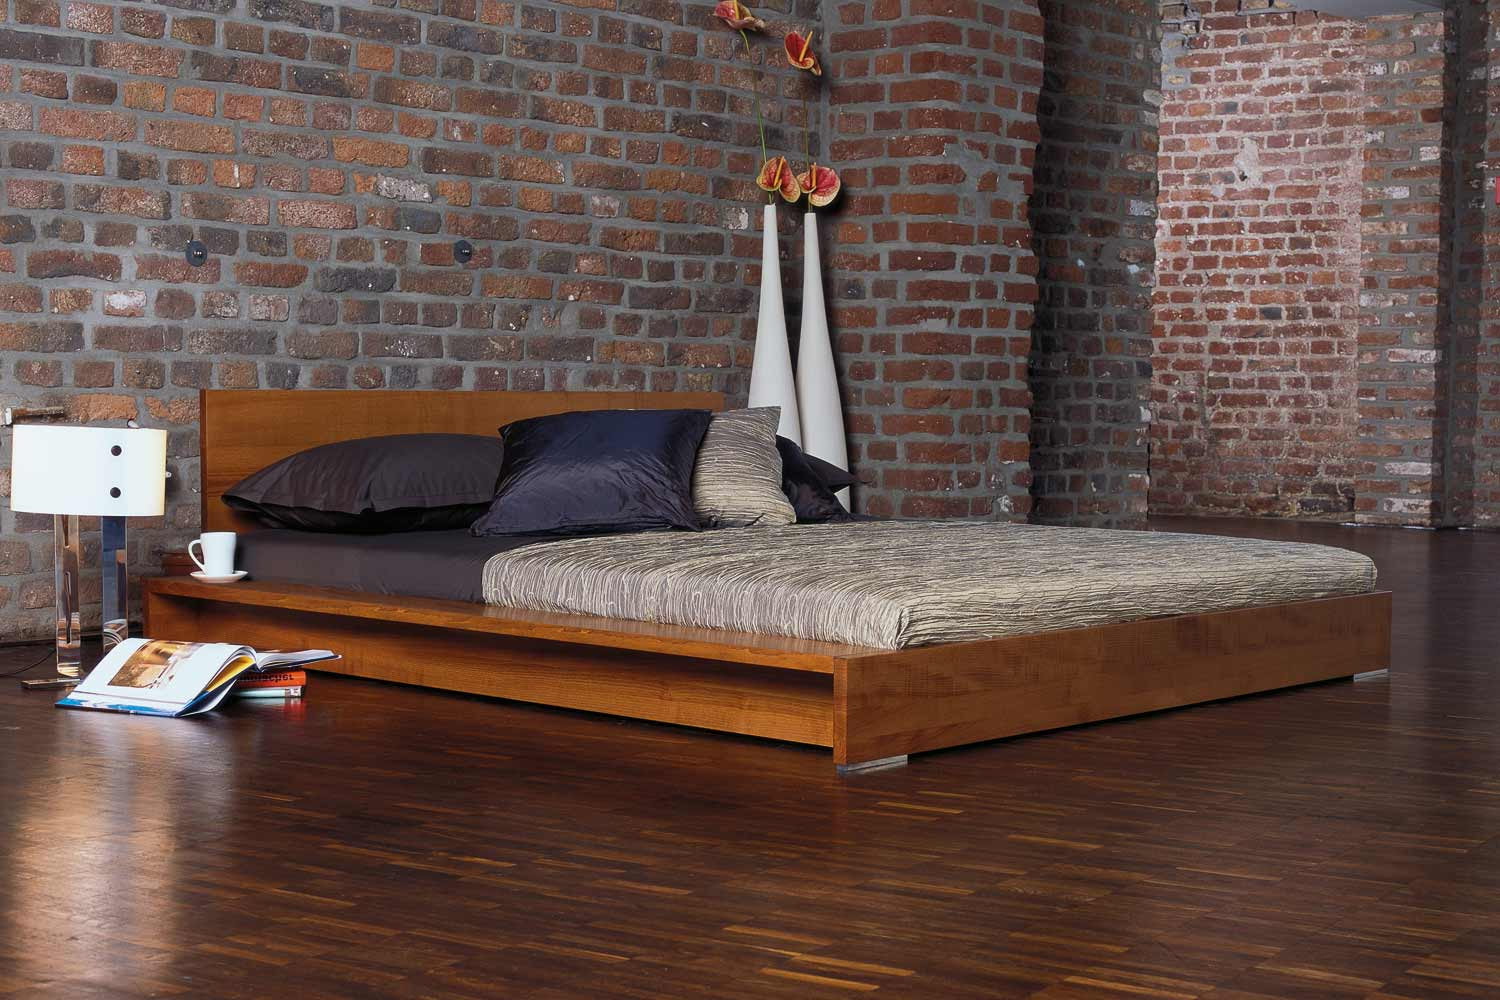 Minimalist Platform Bed: Designs And Pictures